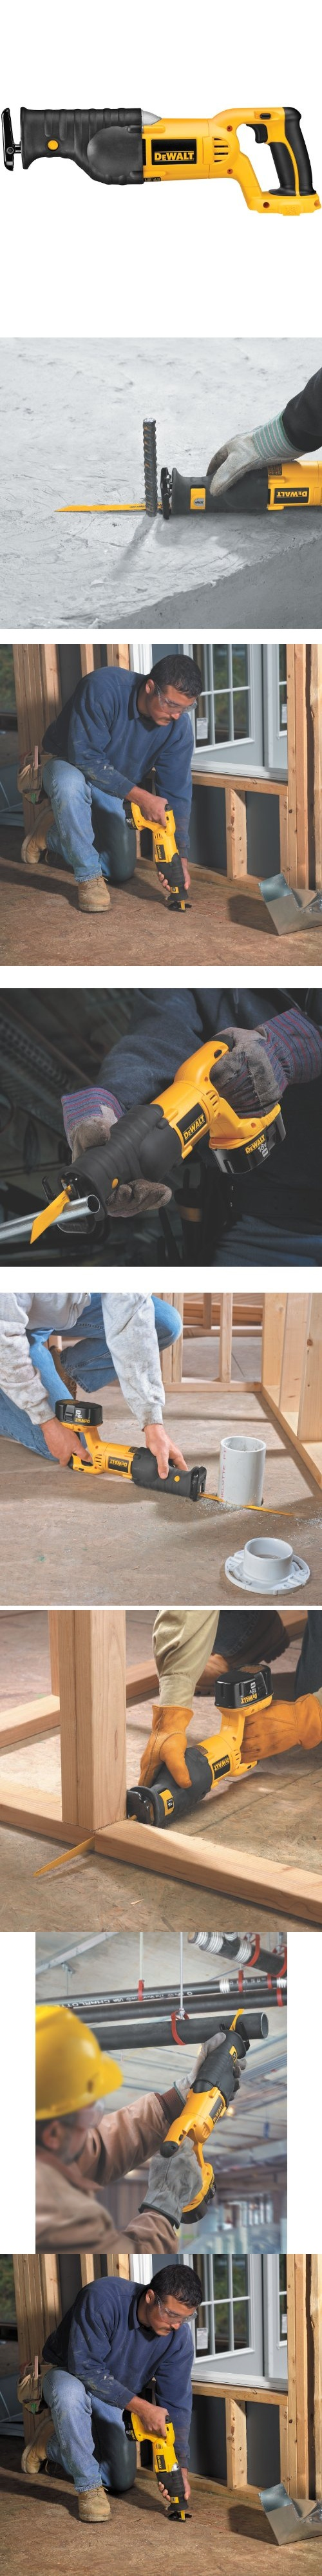 DEWALT Bare-Tool DC385B  18-Volt Cordless Reciprocating Saw - The DeWalt DC385 is a 18V heavy-duty cordless reciprocating saw. The 18v cordless reciprocating saw provides 1 stroke length and 2900 SPM for fast cutting. Its keyless blade clamp allows for changing ... - Reciprocating Saws - Tools  Hardware - Too low to display